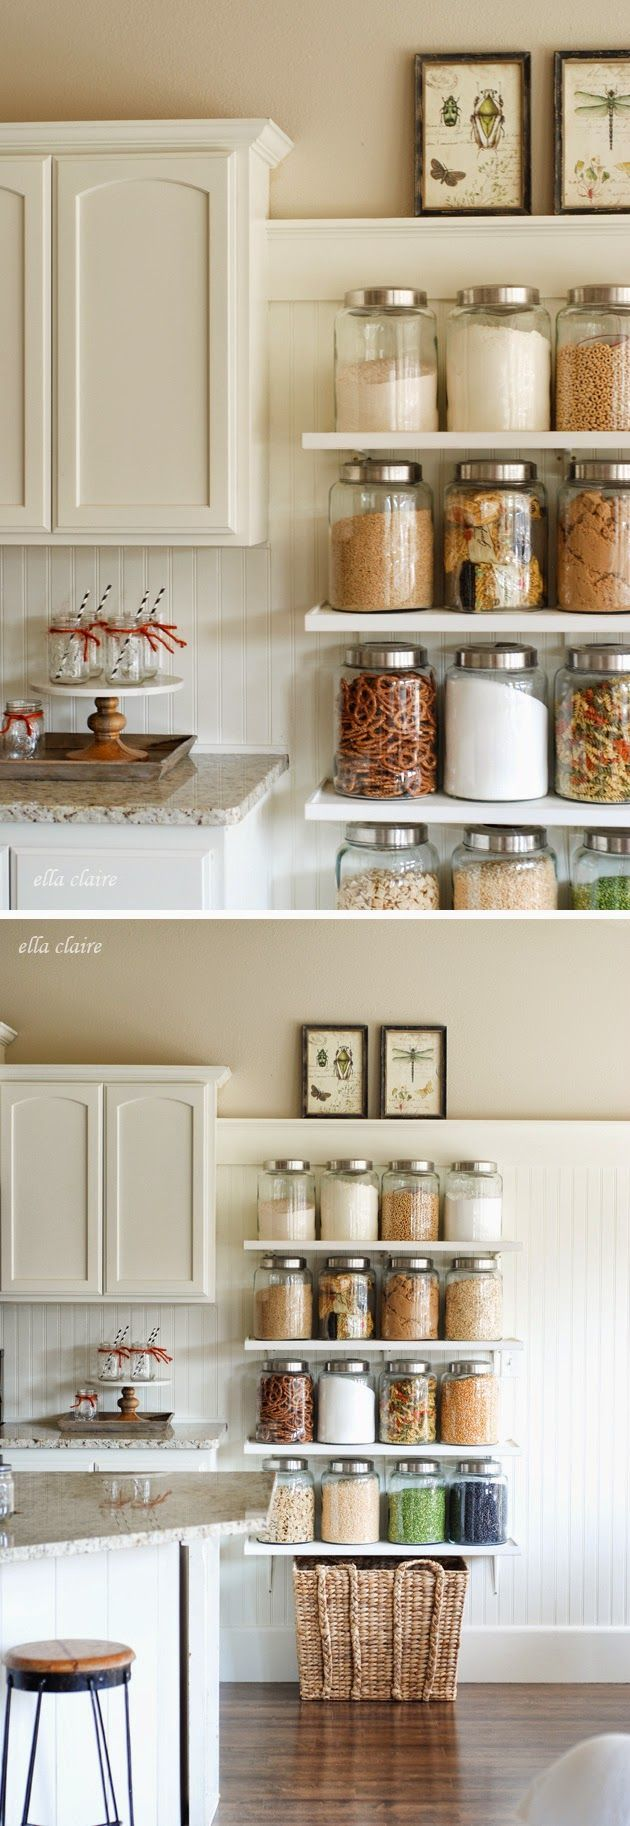 Kitchen Storage Diy Best 10 Diy Kitchen Storage Ideas On Pinterest  Small Kitchen